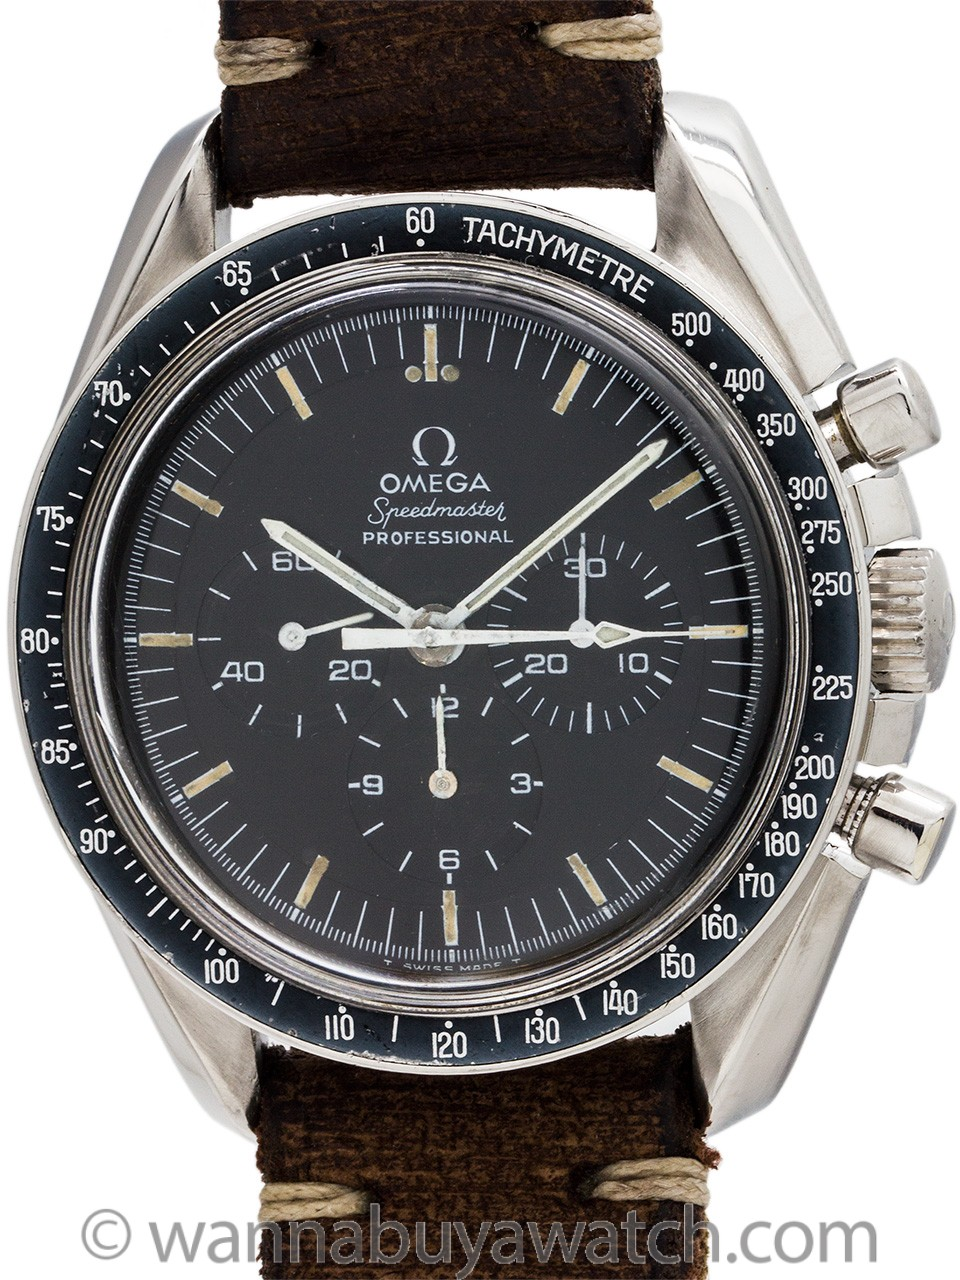 Omega Speedmaster Pre Man on the Moon ref 145.022-69 circa 1969